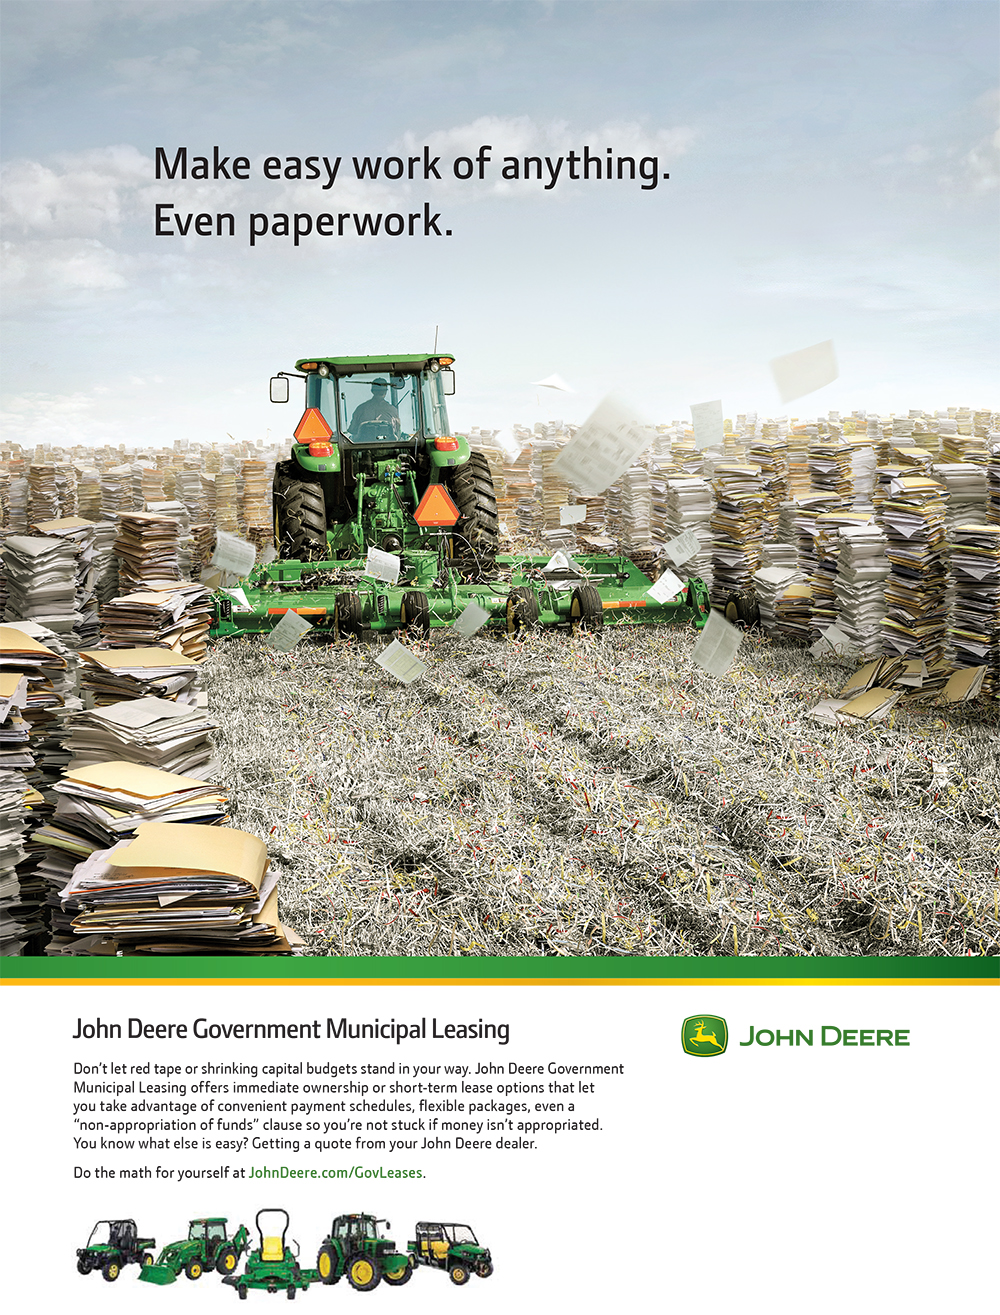 John Deere Government Municipal Leasing Ad